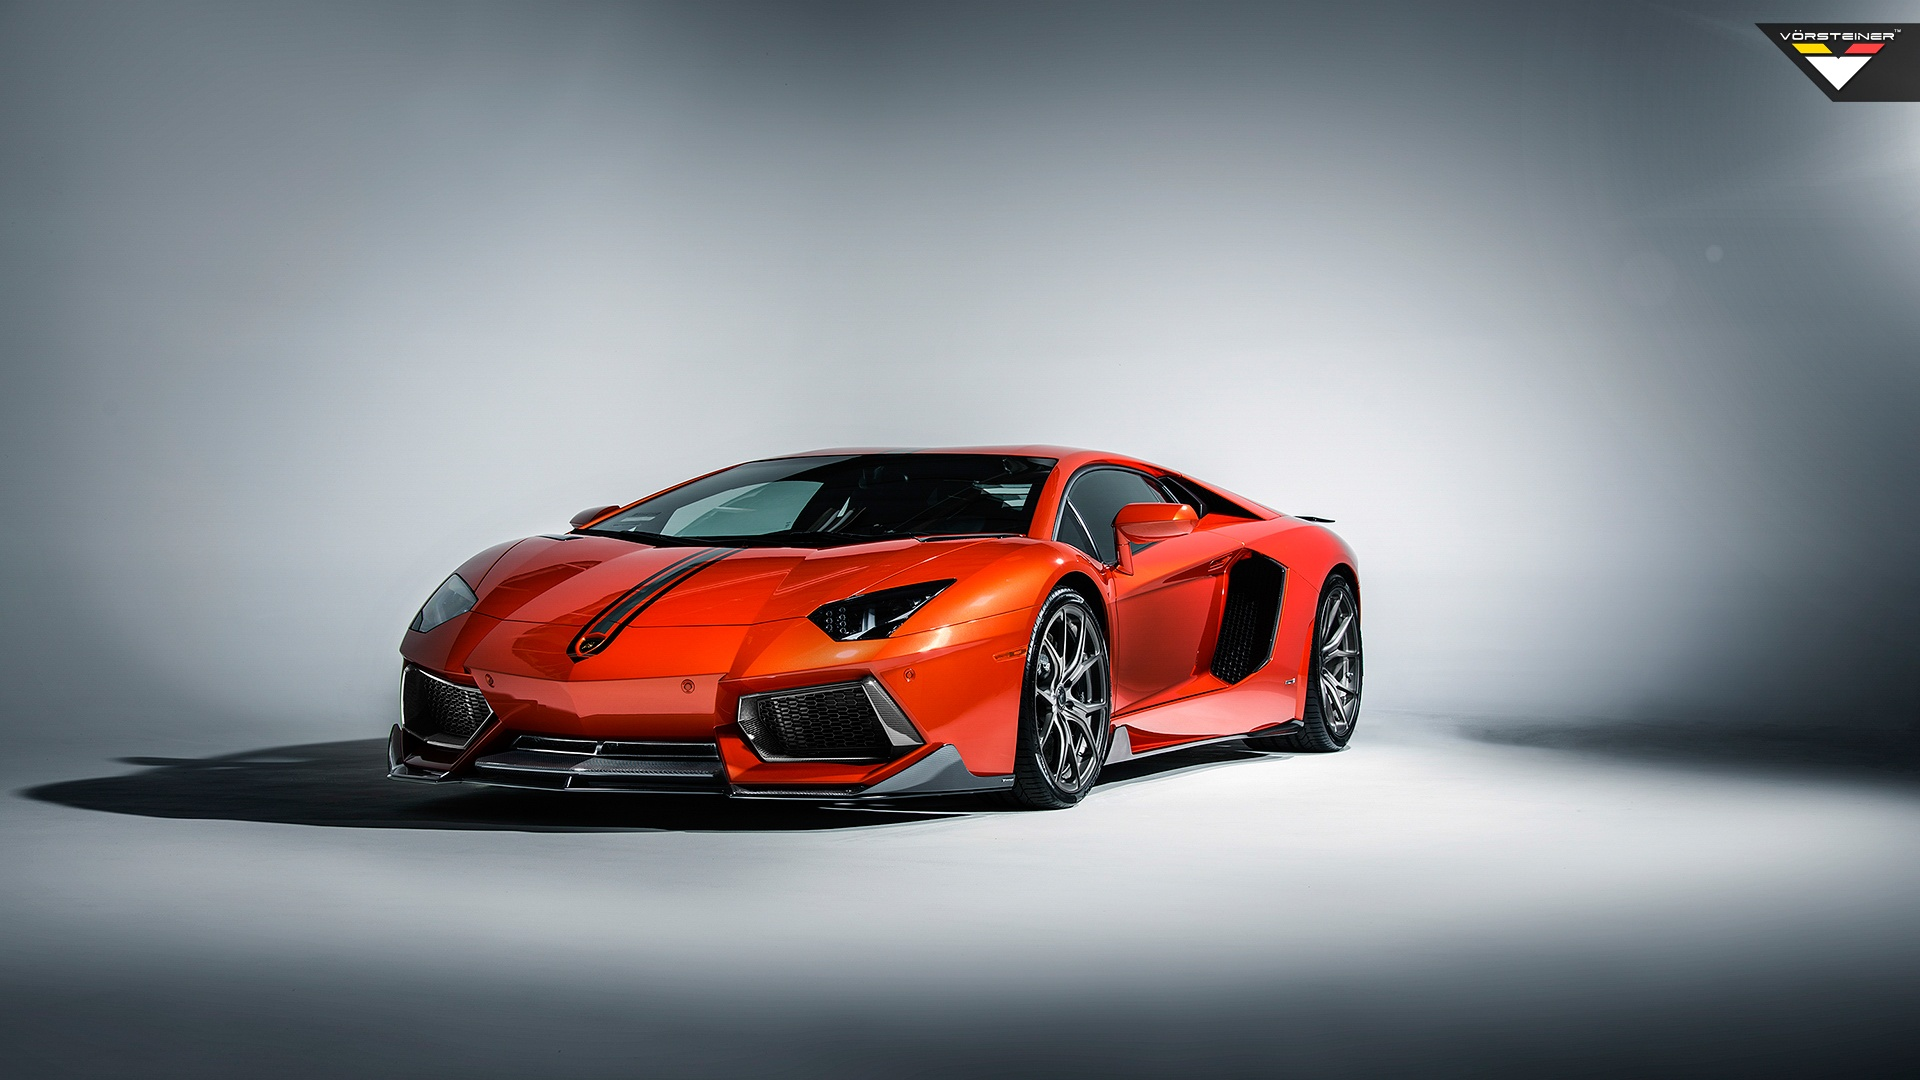 25 Exotic Awesome Car Wallpapers Hd Edition Stugon